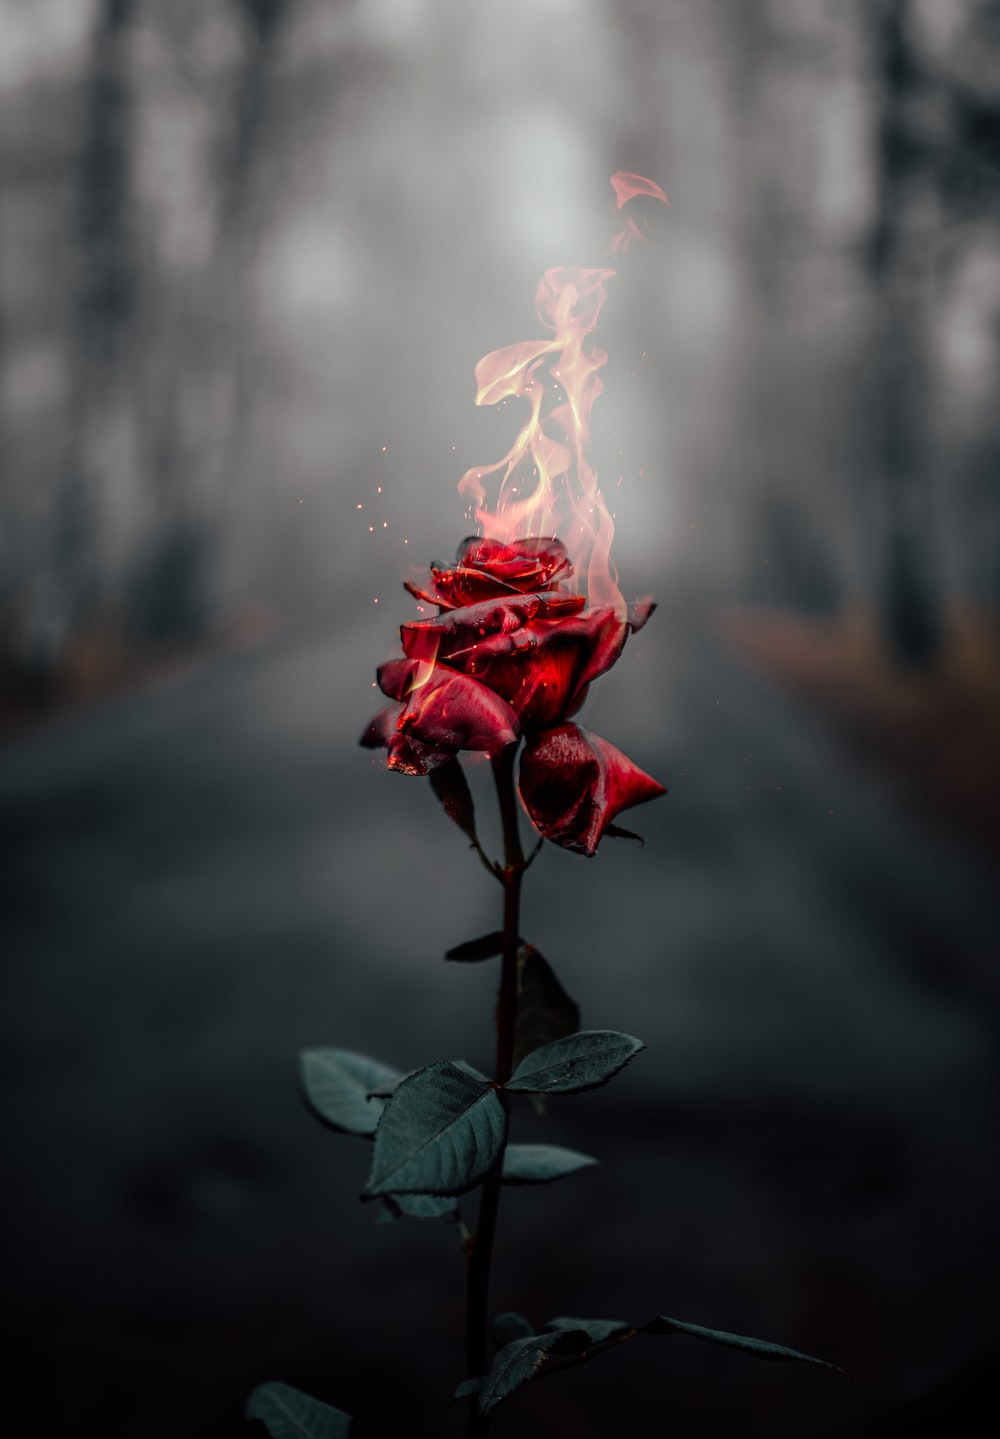 selective focus photography of flaming rose flower during daytime